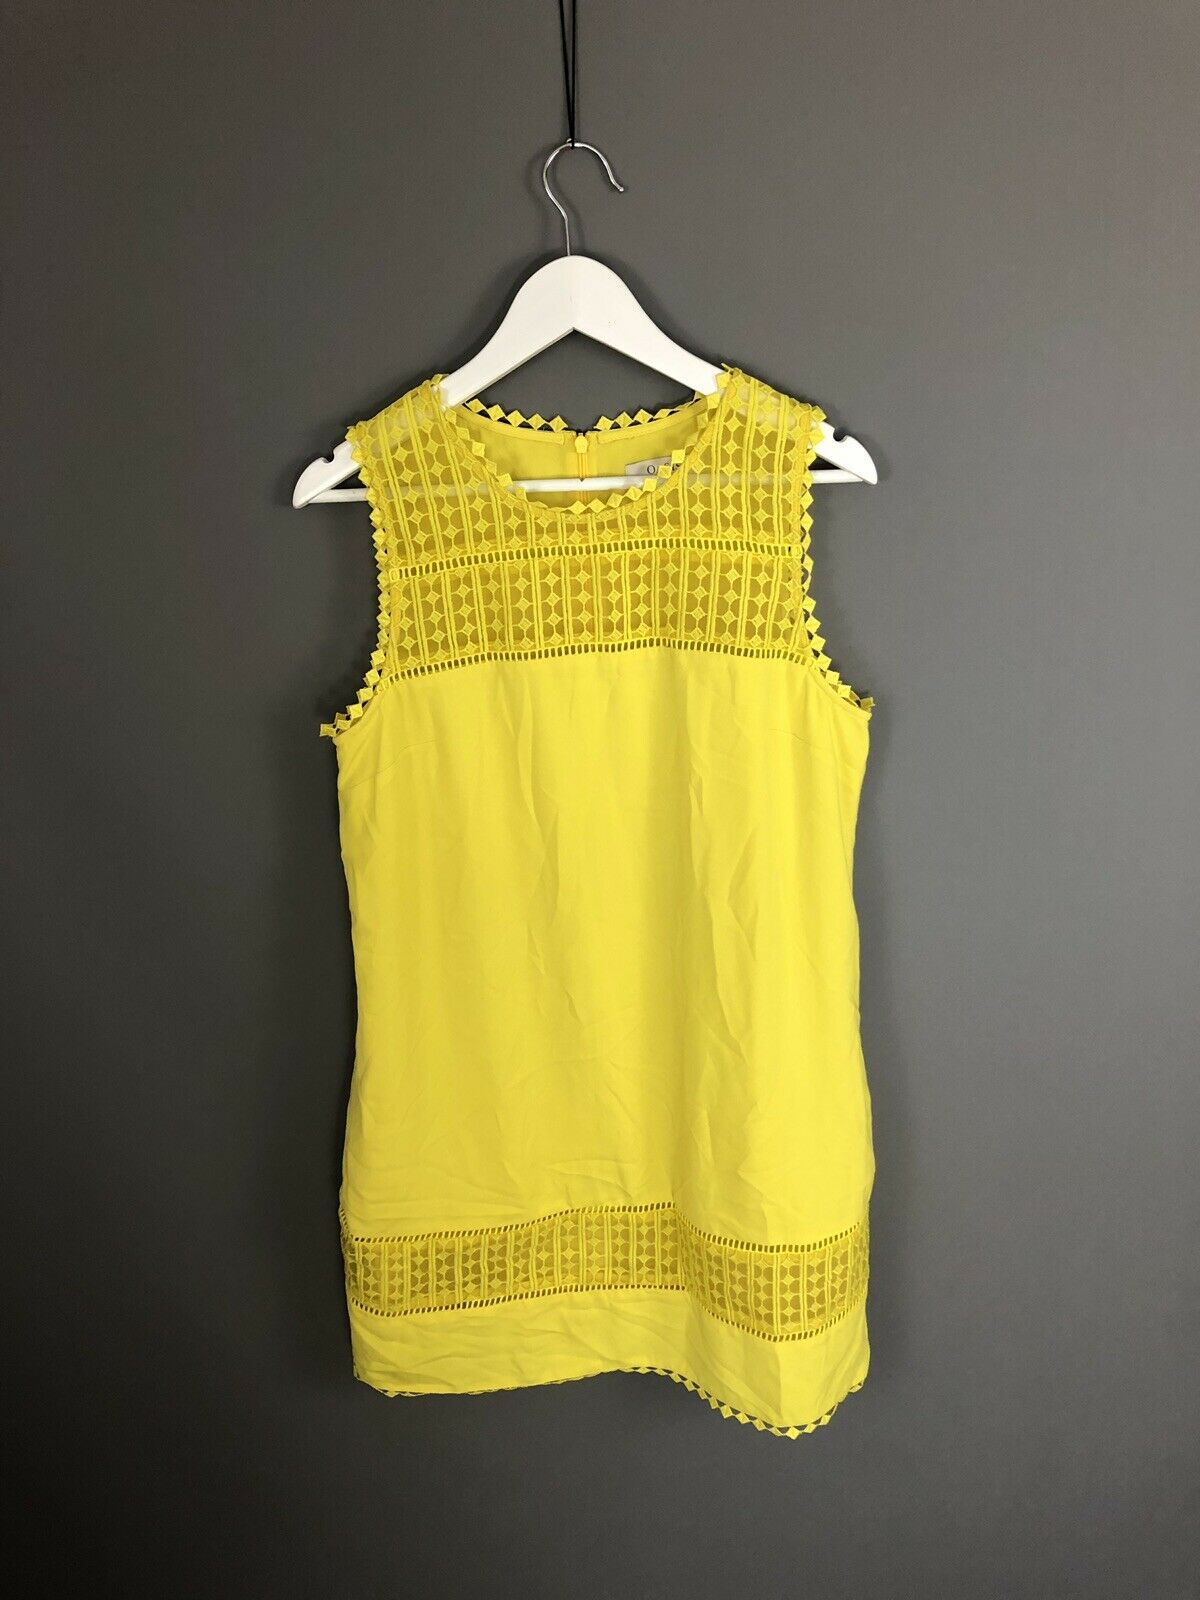 OASIS Party Dress - Size UK14 - Yellow - Great Condition - Women's